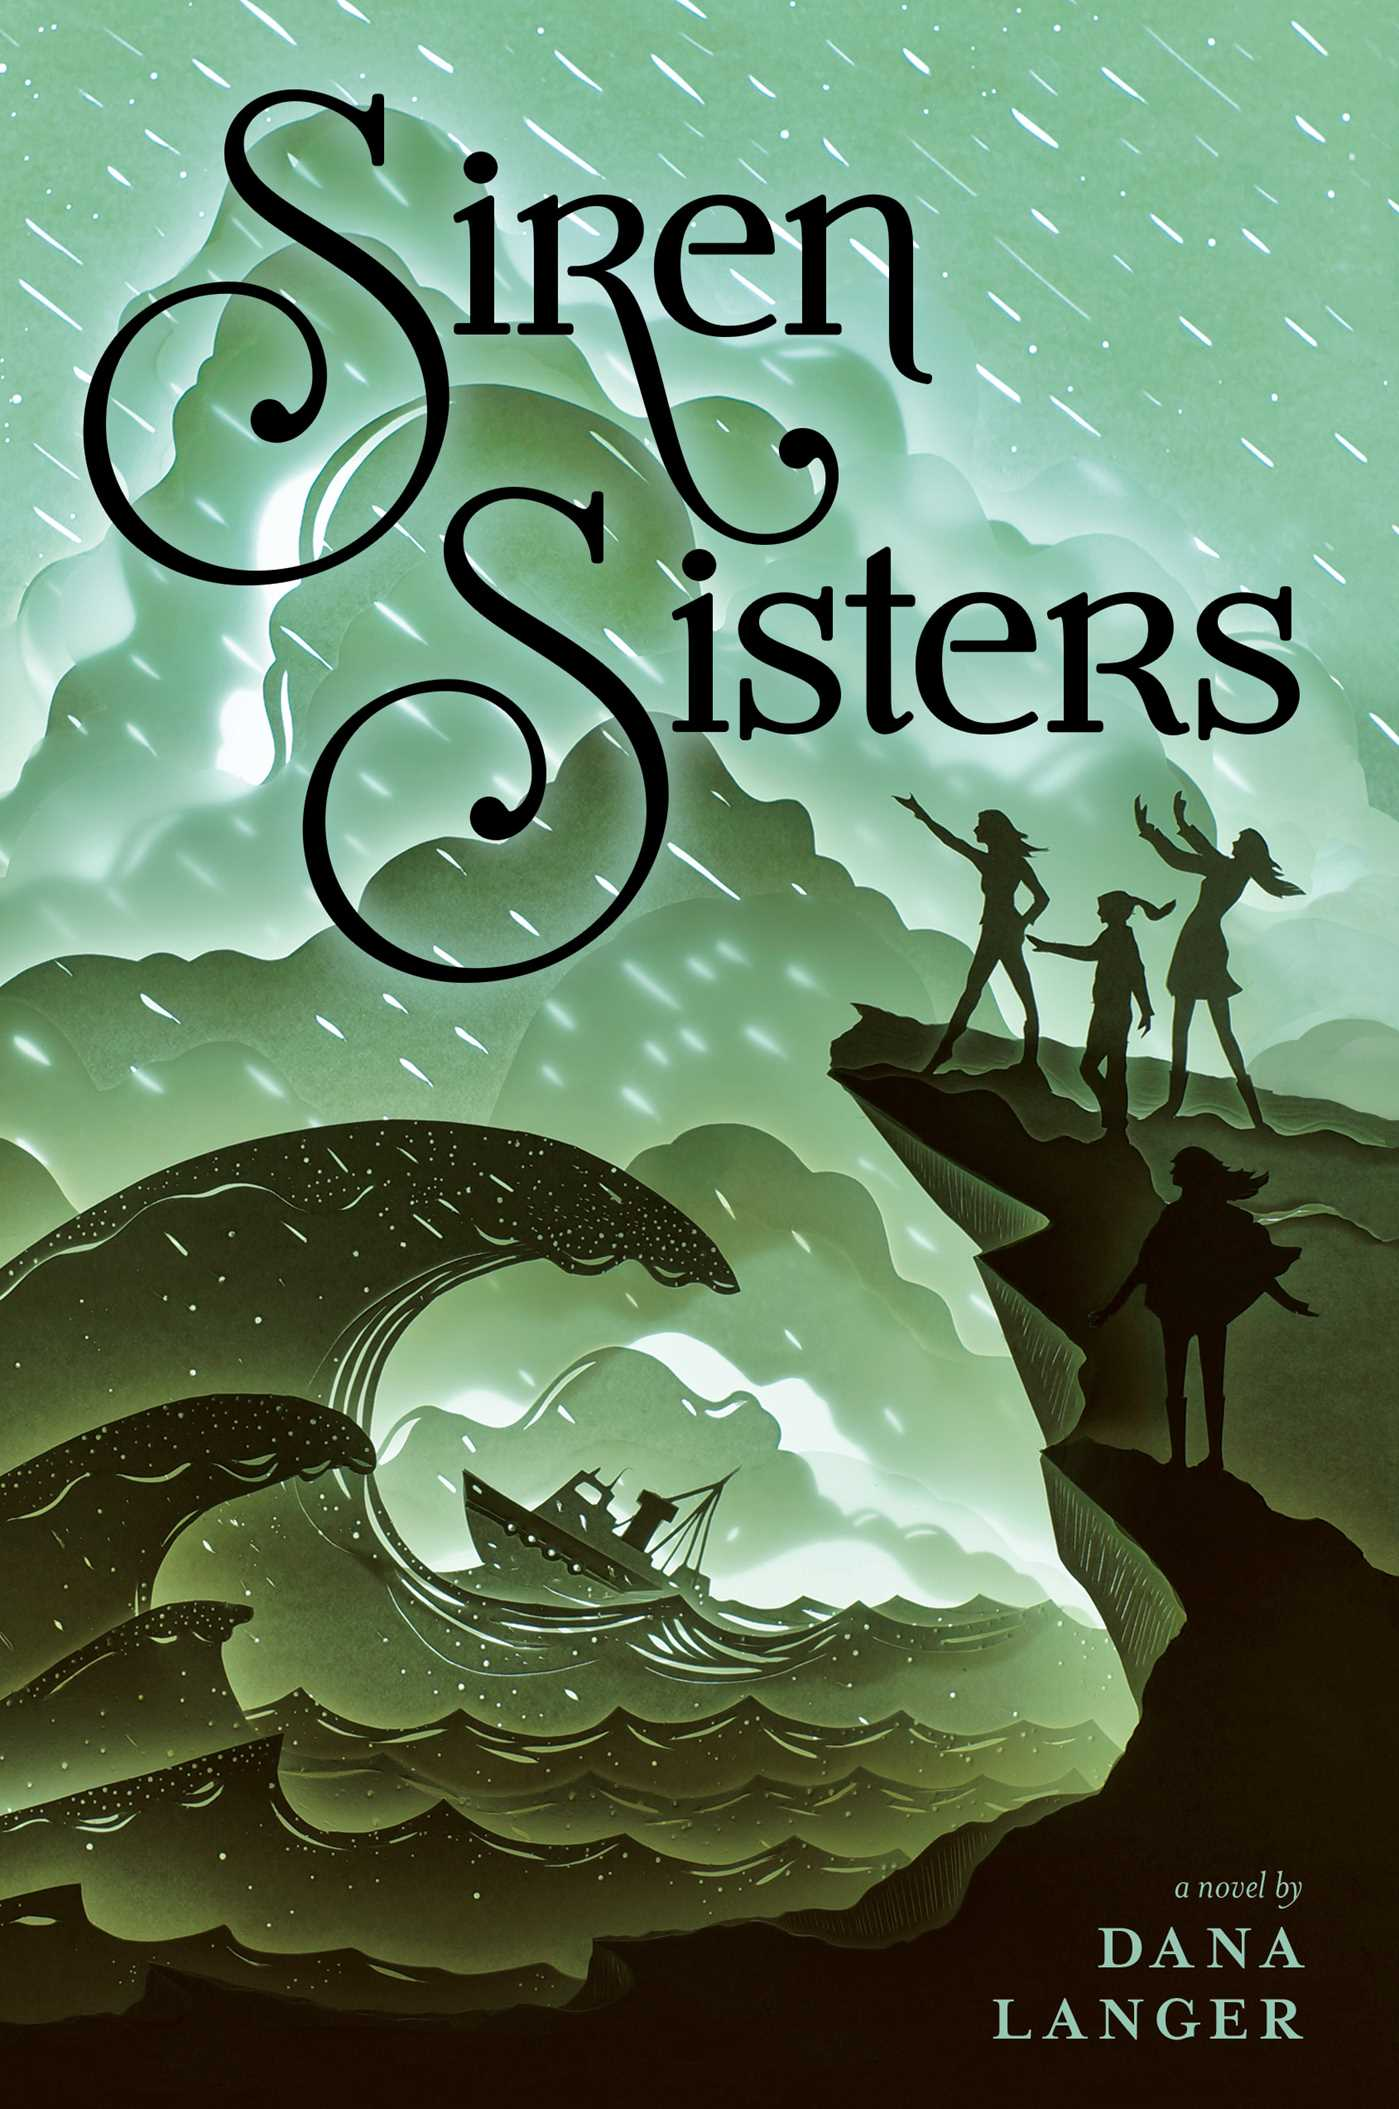 Siren sisters book by dana langer official publisher page siren sisters 9781481466868 hr fandeluxe Choice Image